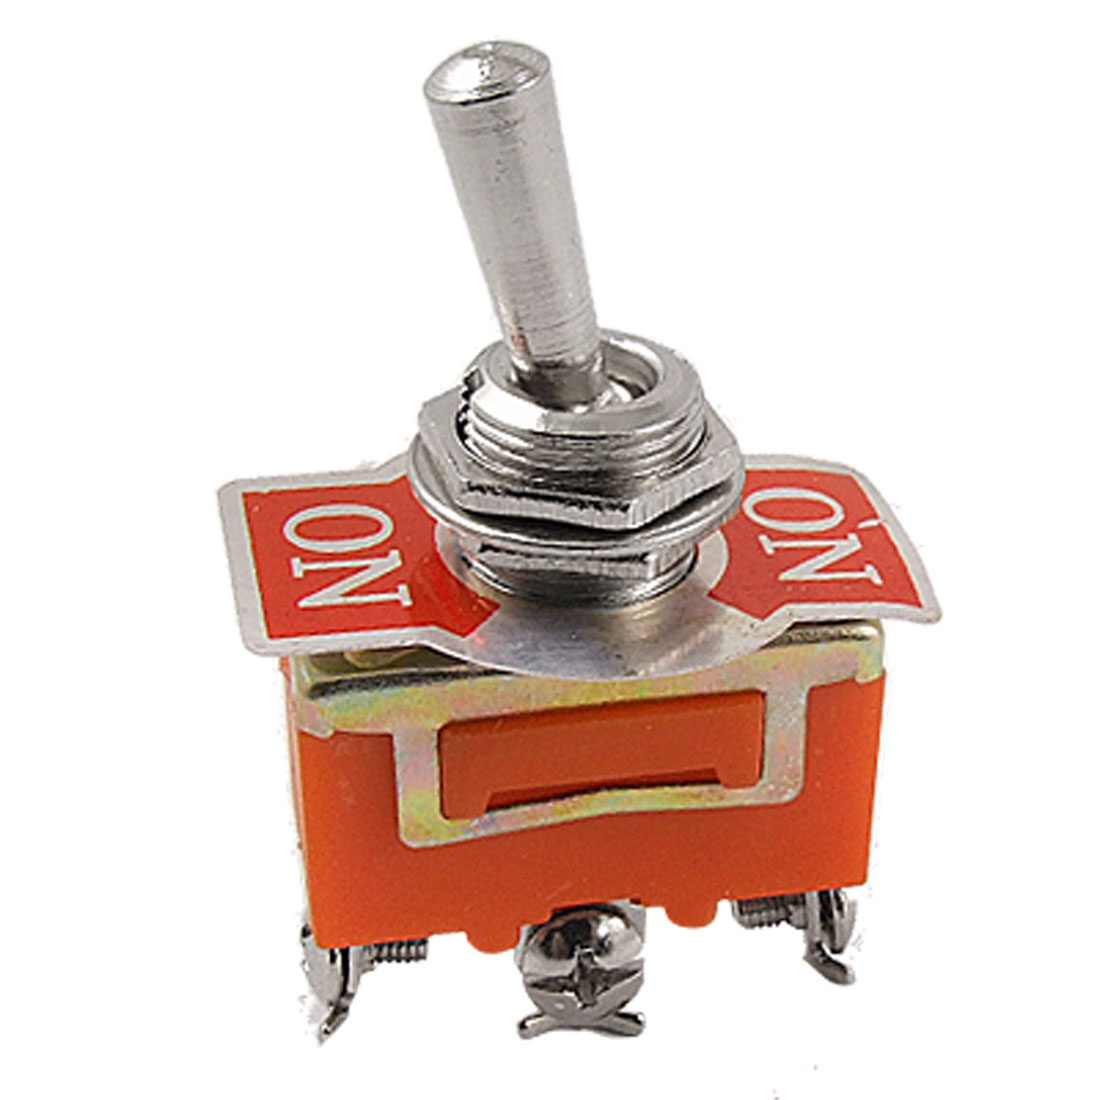 AC 250V 15A Screw Terminals ON/ON 2 Position SPDT Toggle Switch